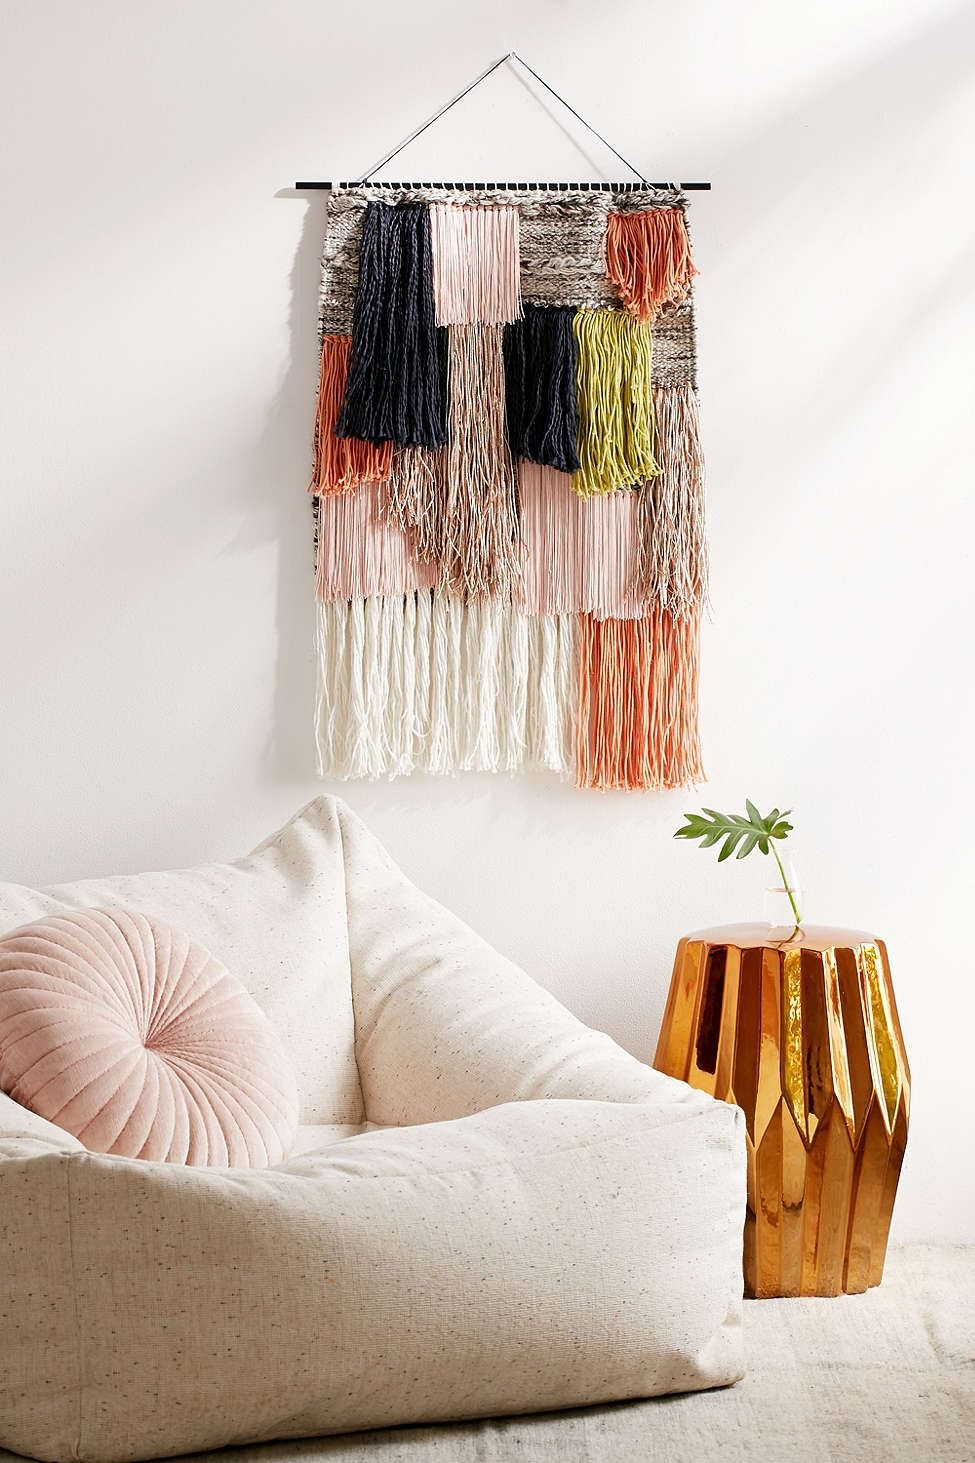 woven fringe wall hanging diy home decor bedroom decor on wall hangings id=65785